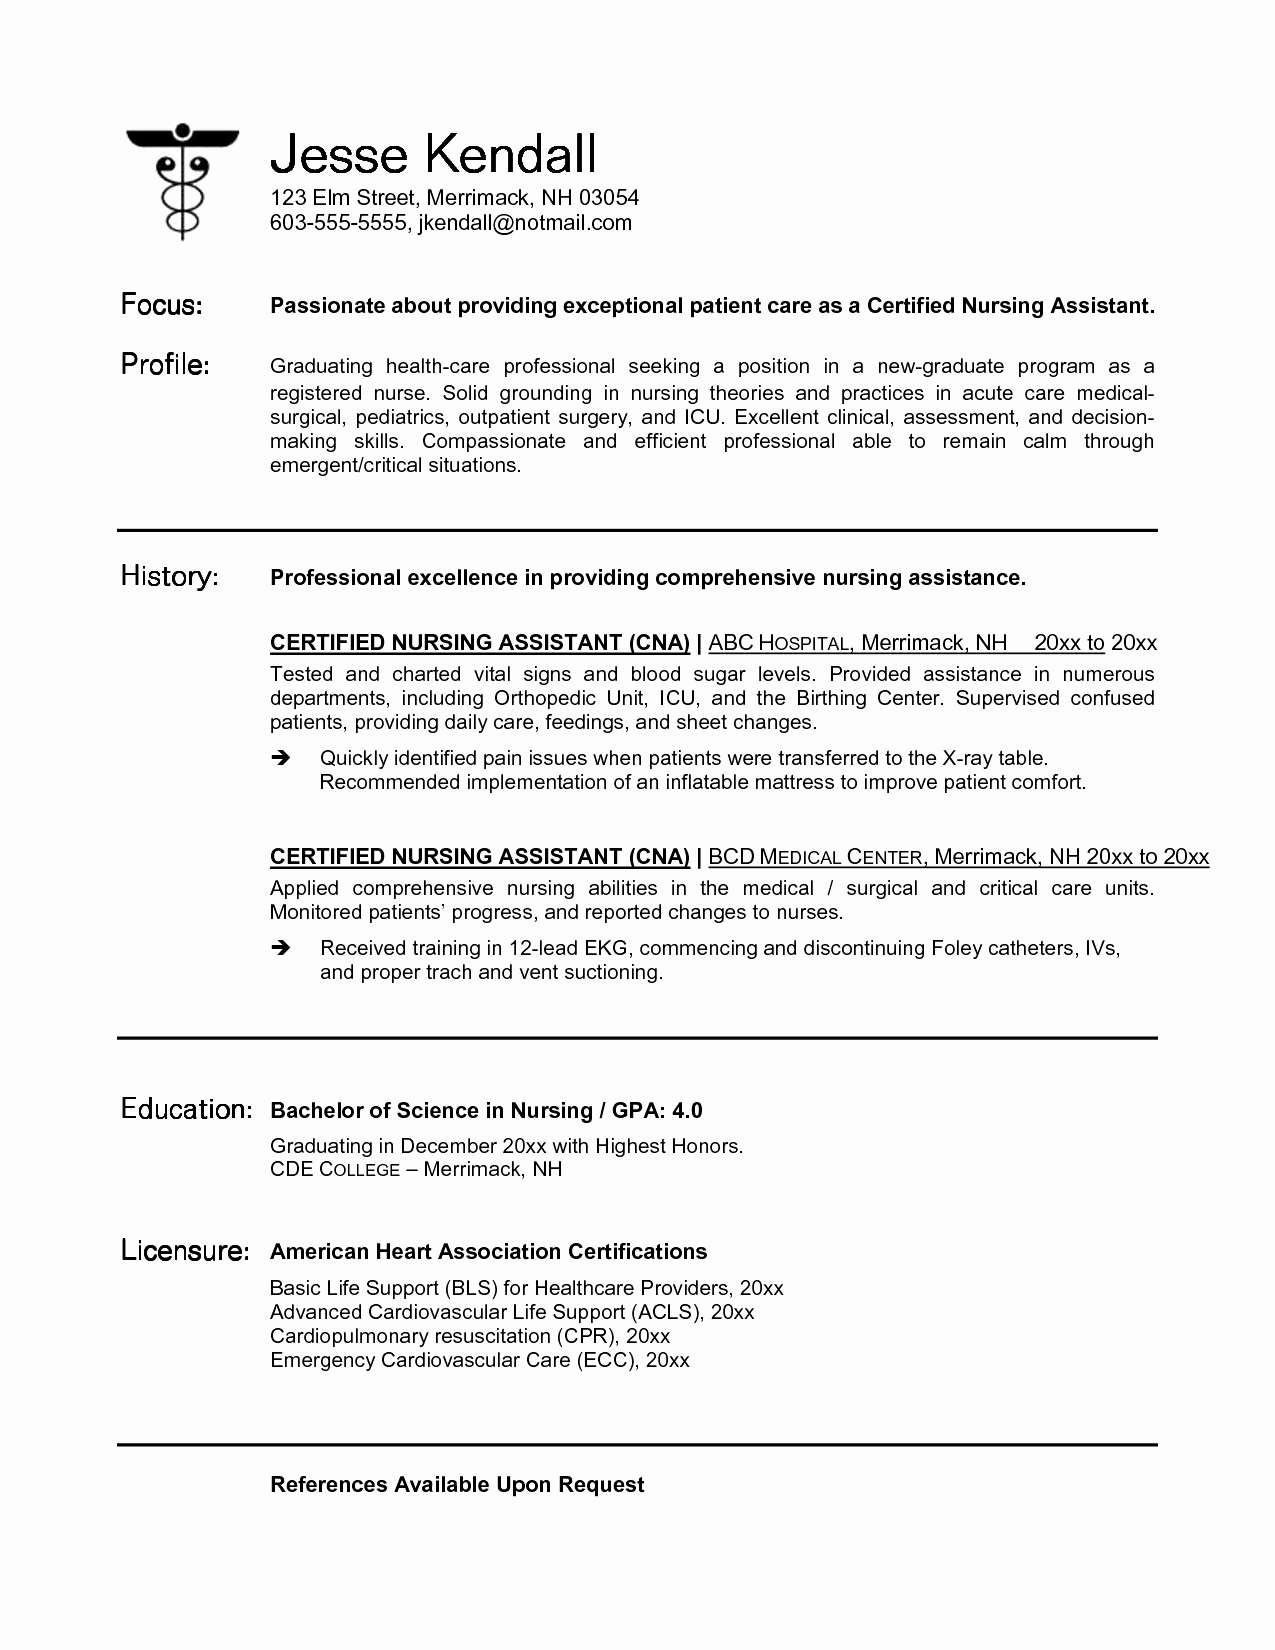 Medical Emergency Letter Template - Nursing Resume Cover Letter Beautiful Nursing Resume Samples New